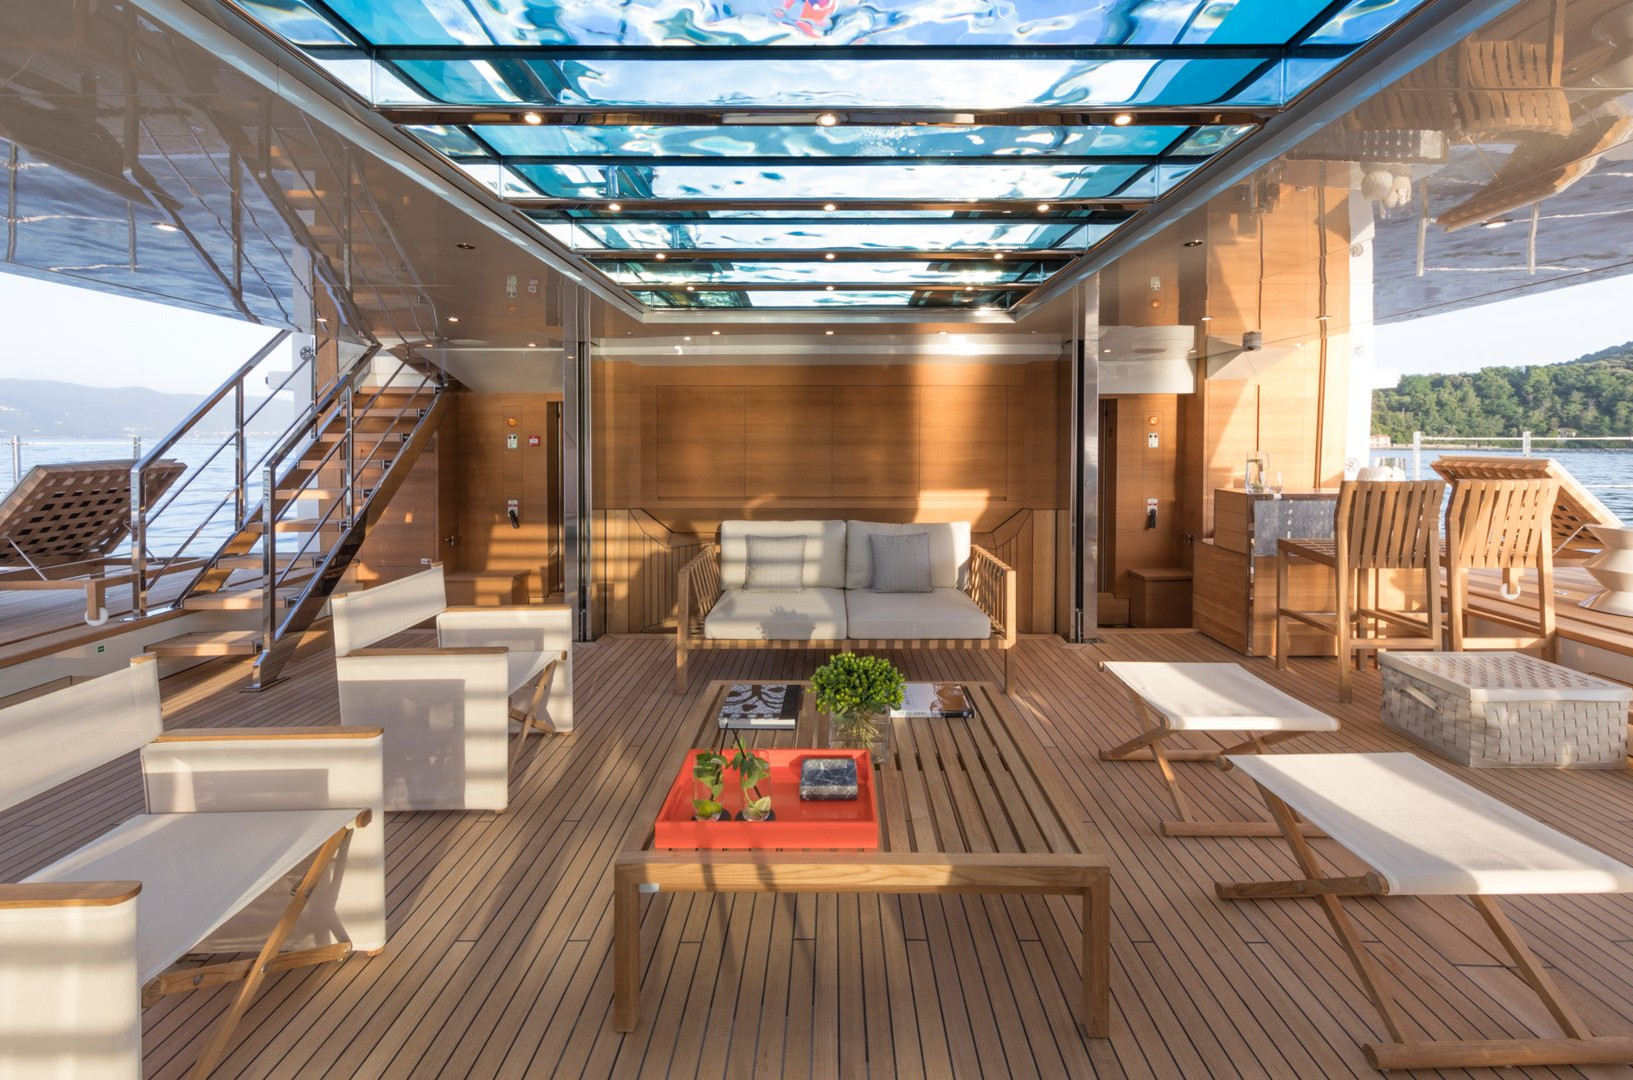 Yacht SEVEN SINS - Beach Club. Sea access and chill out room with panoramic views of the ocean